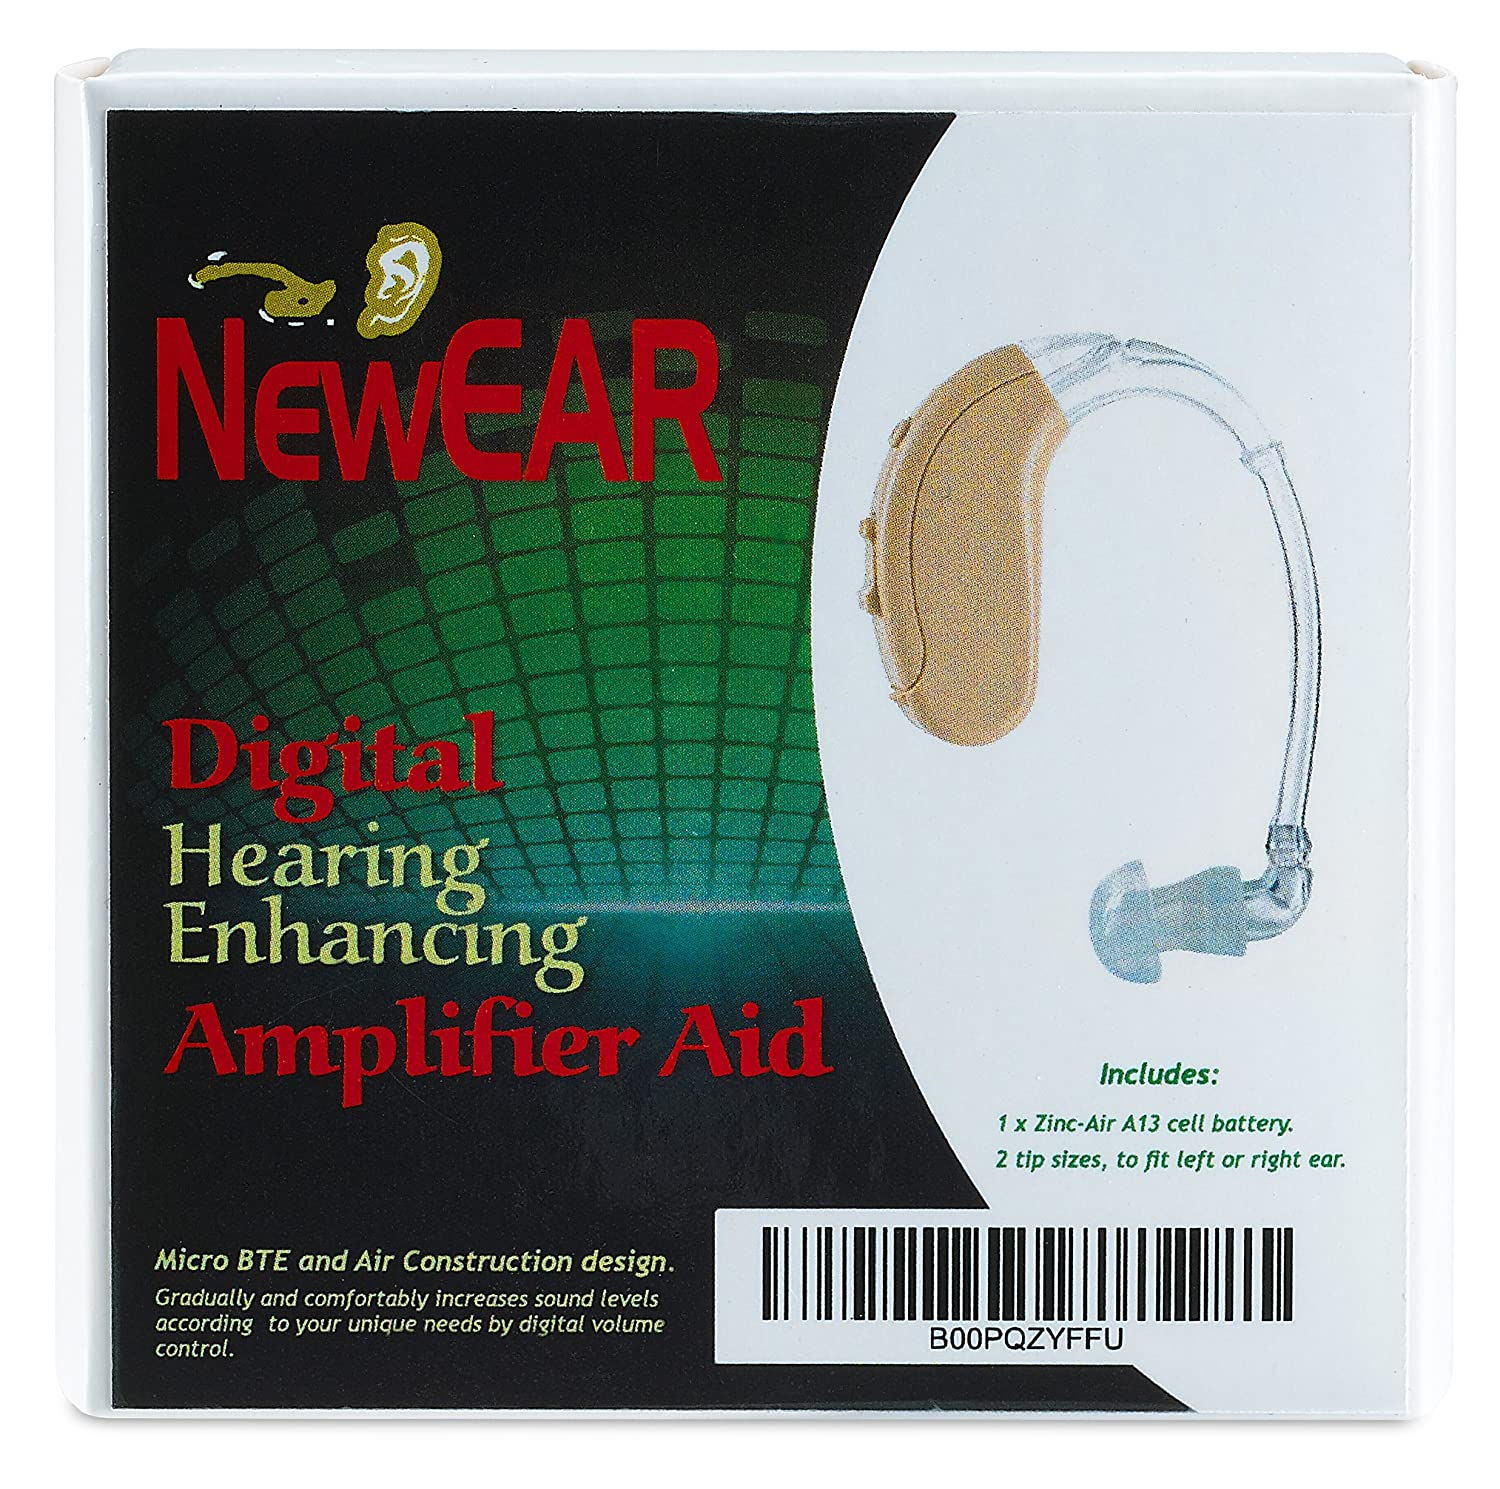 Newear Digital Modern High Power Personal Sound Hearing Living Aids Amplifiers Accessories Amplifier Aid Fda Approved Health Care